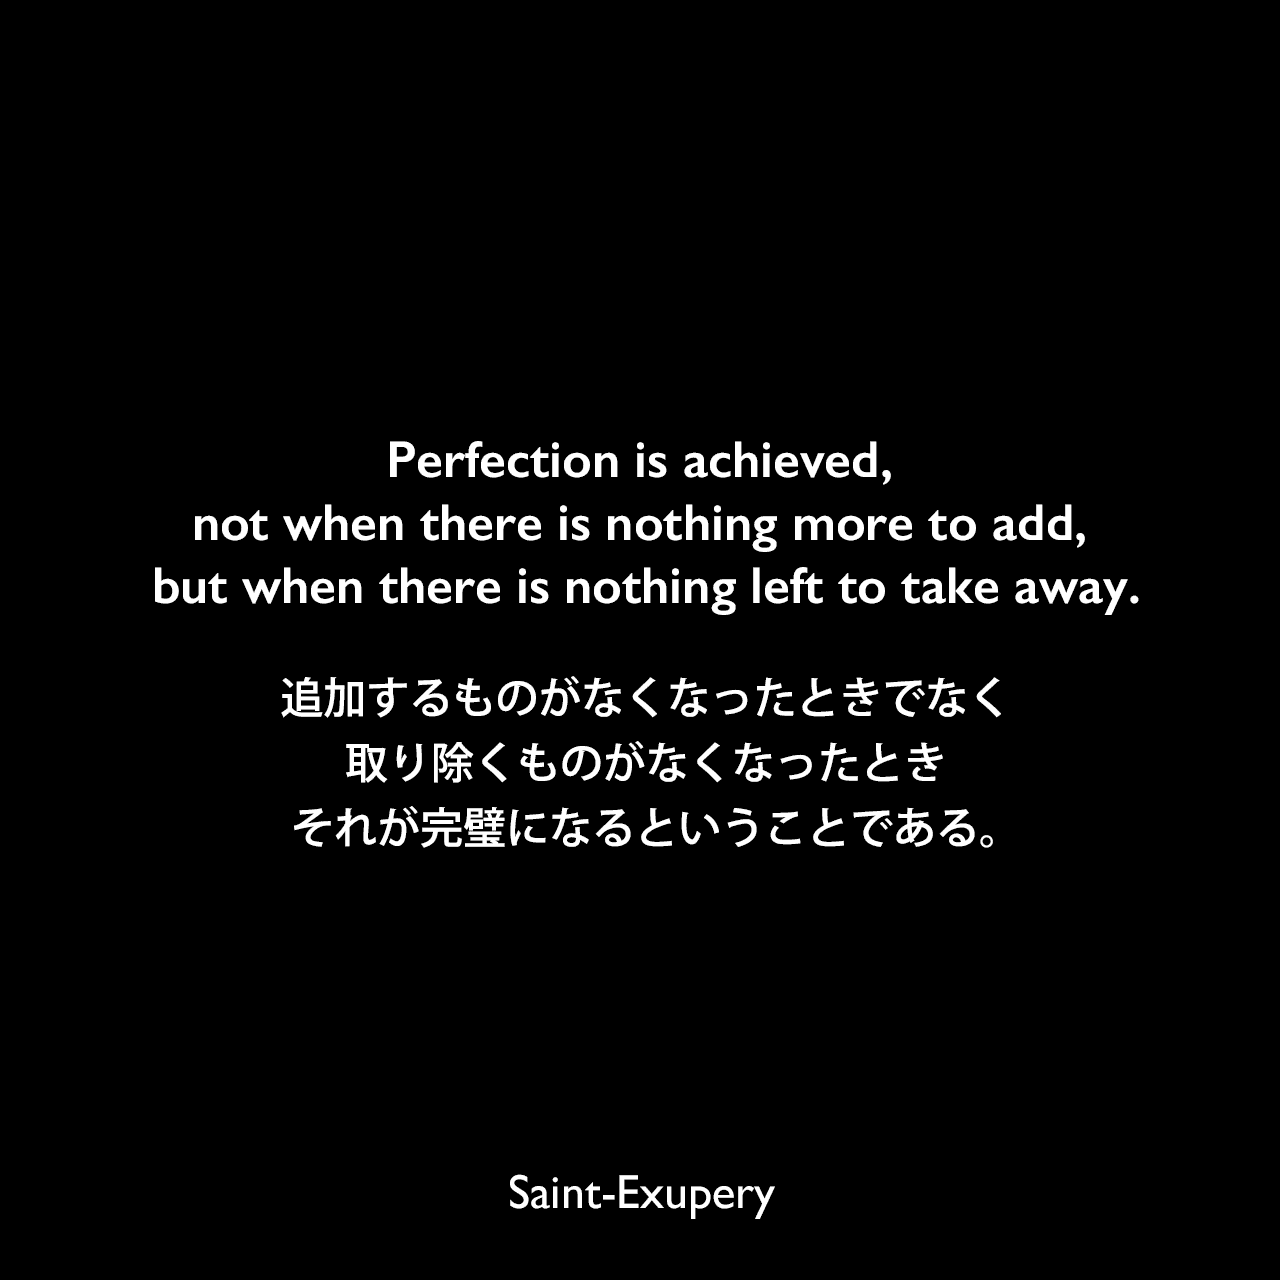 Perfection is achieved, not when there is nothing more to add, but when there is nothing left to take away.追加するものがなくなったときでなく、取り除くものがなくなったとき、それが完璧になるということである。Saint-Exupery